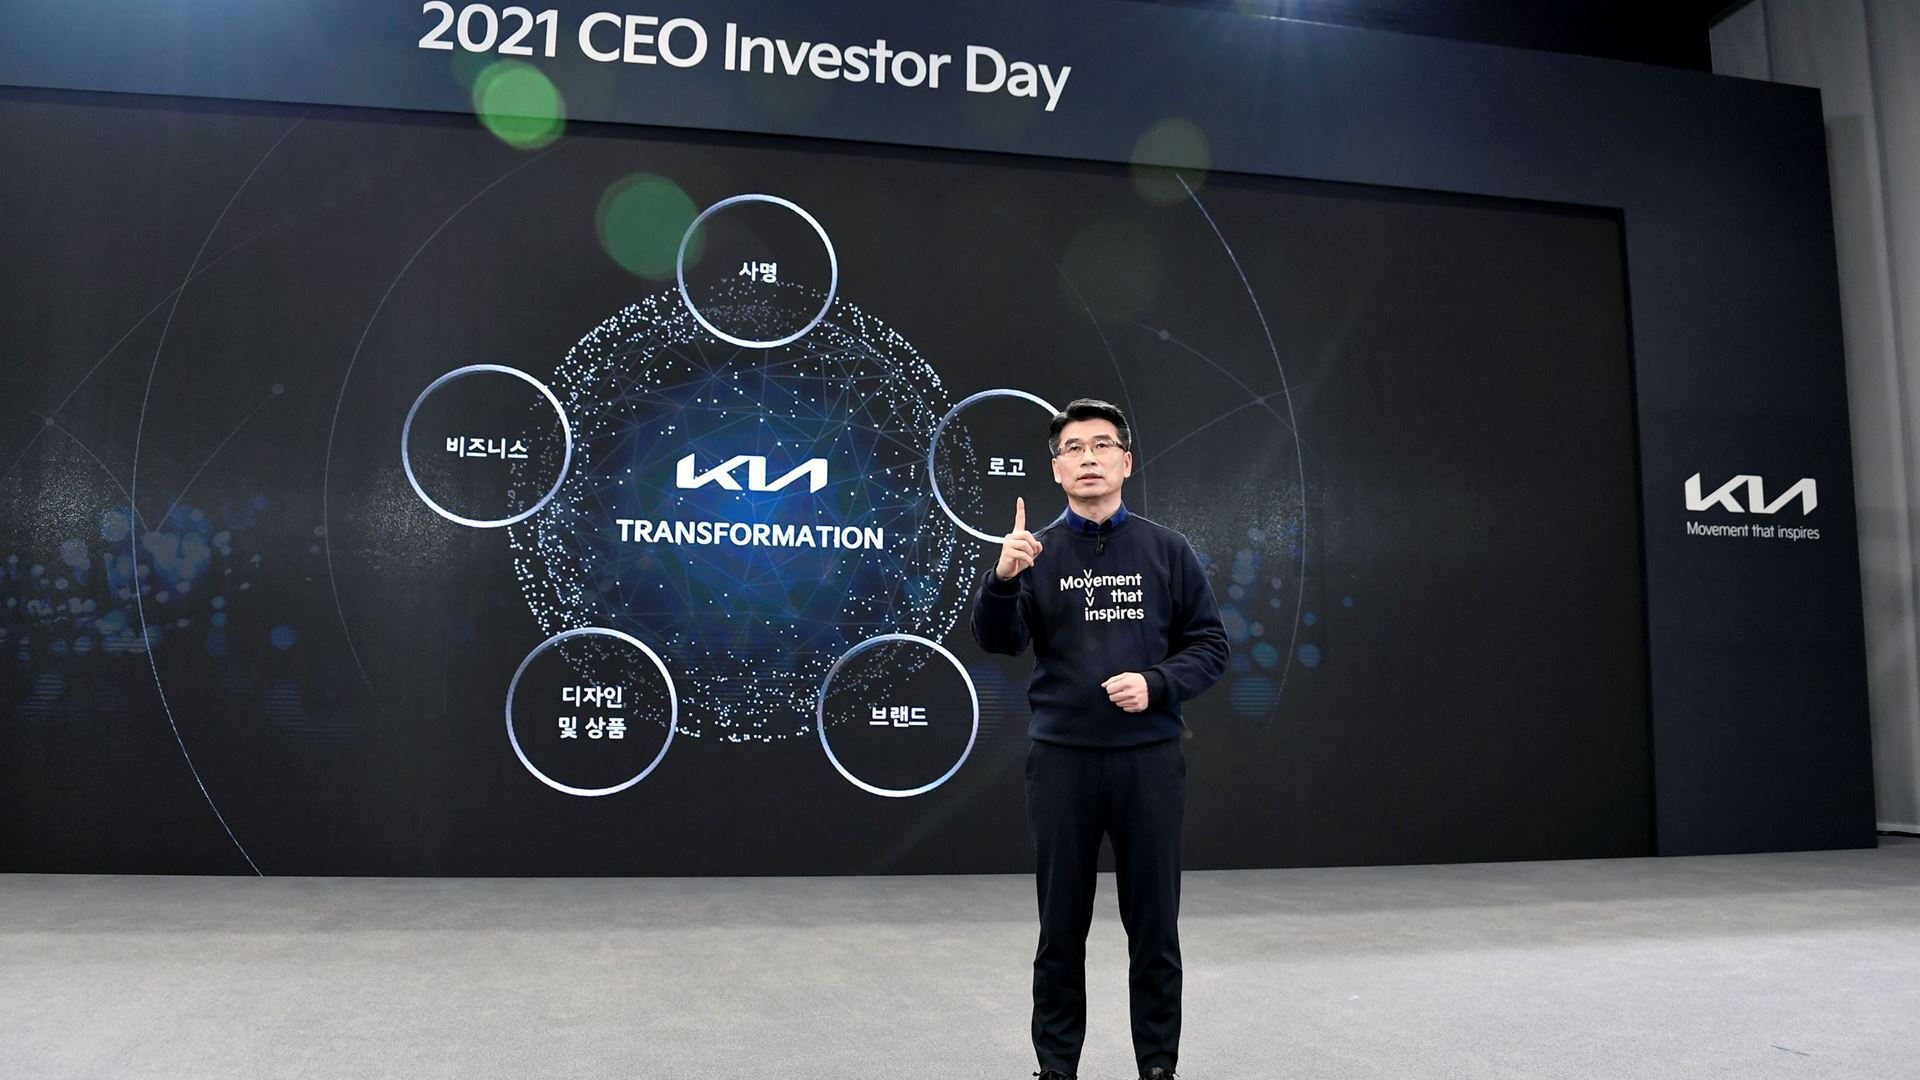 Kia unveils roadmap for transformation, focusing on EVs and mobility solutions - Image 2